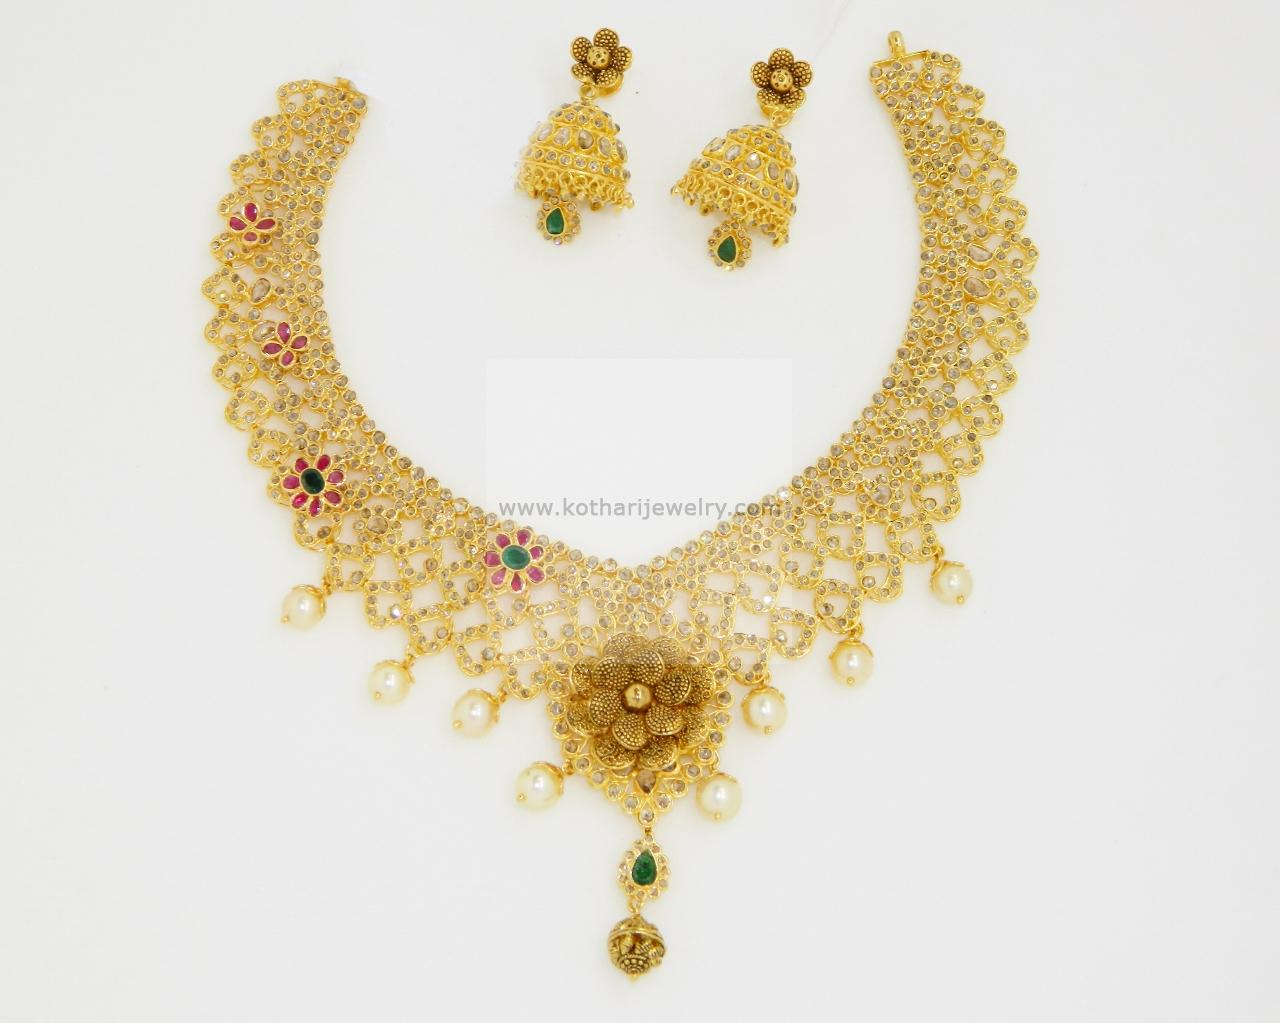 Gold Necklace - 22Kt Uncut diamond necklace set, 22Kt uncut ...